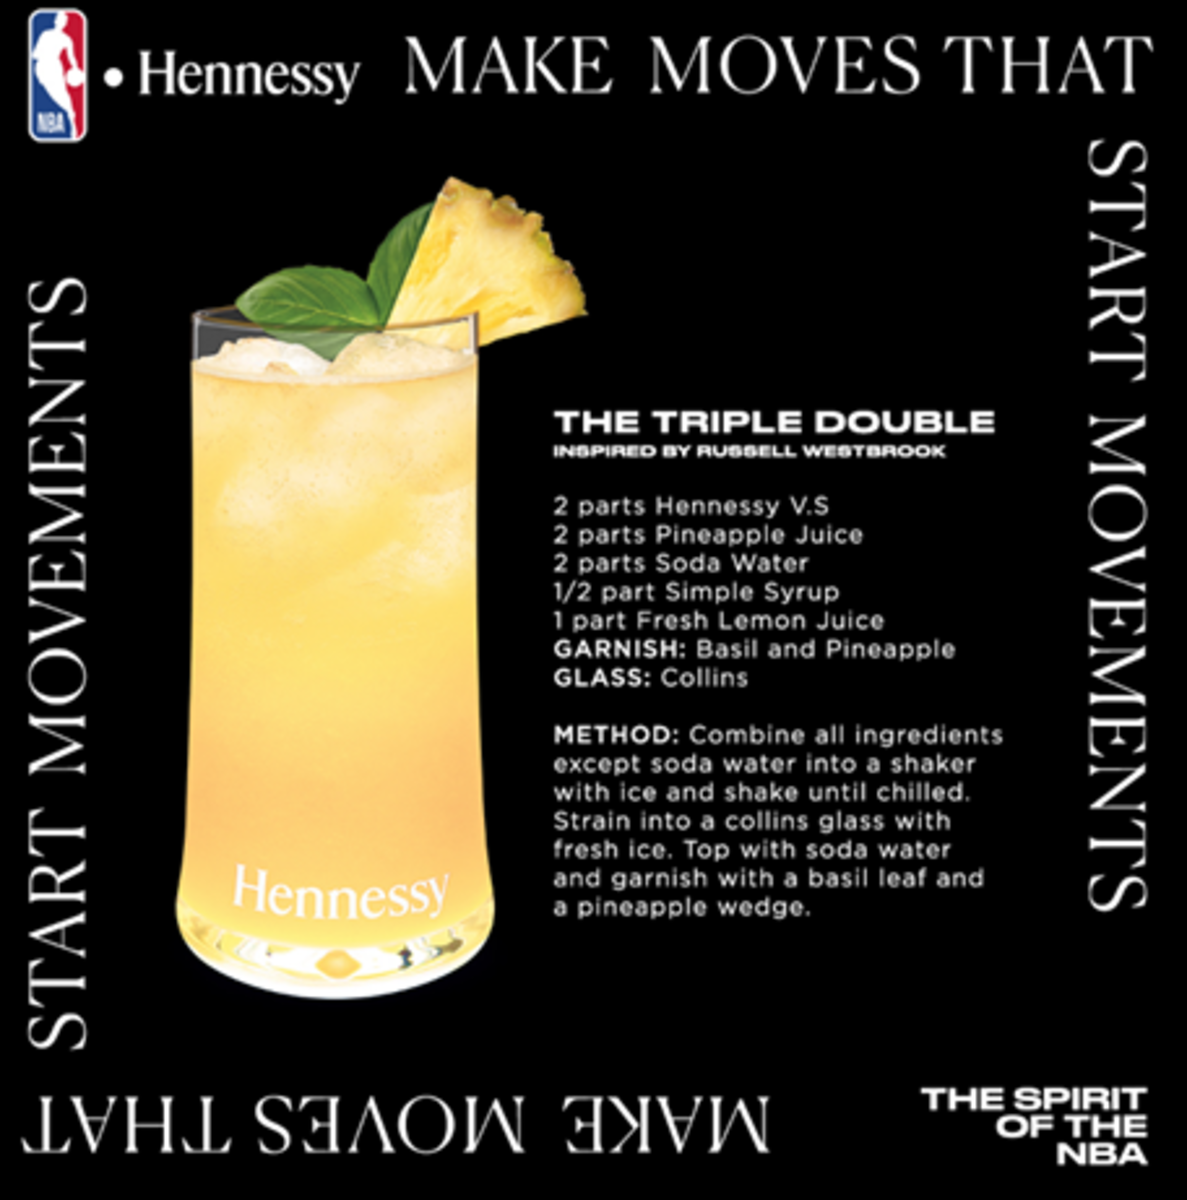 Recipe card for the Hennessy Triple Double cocktail